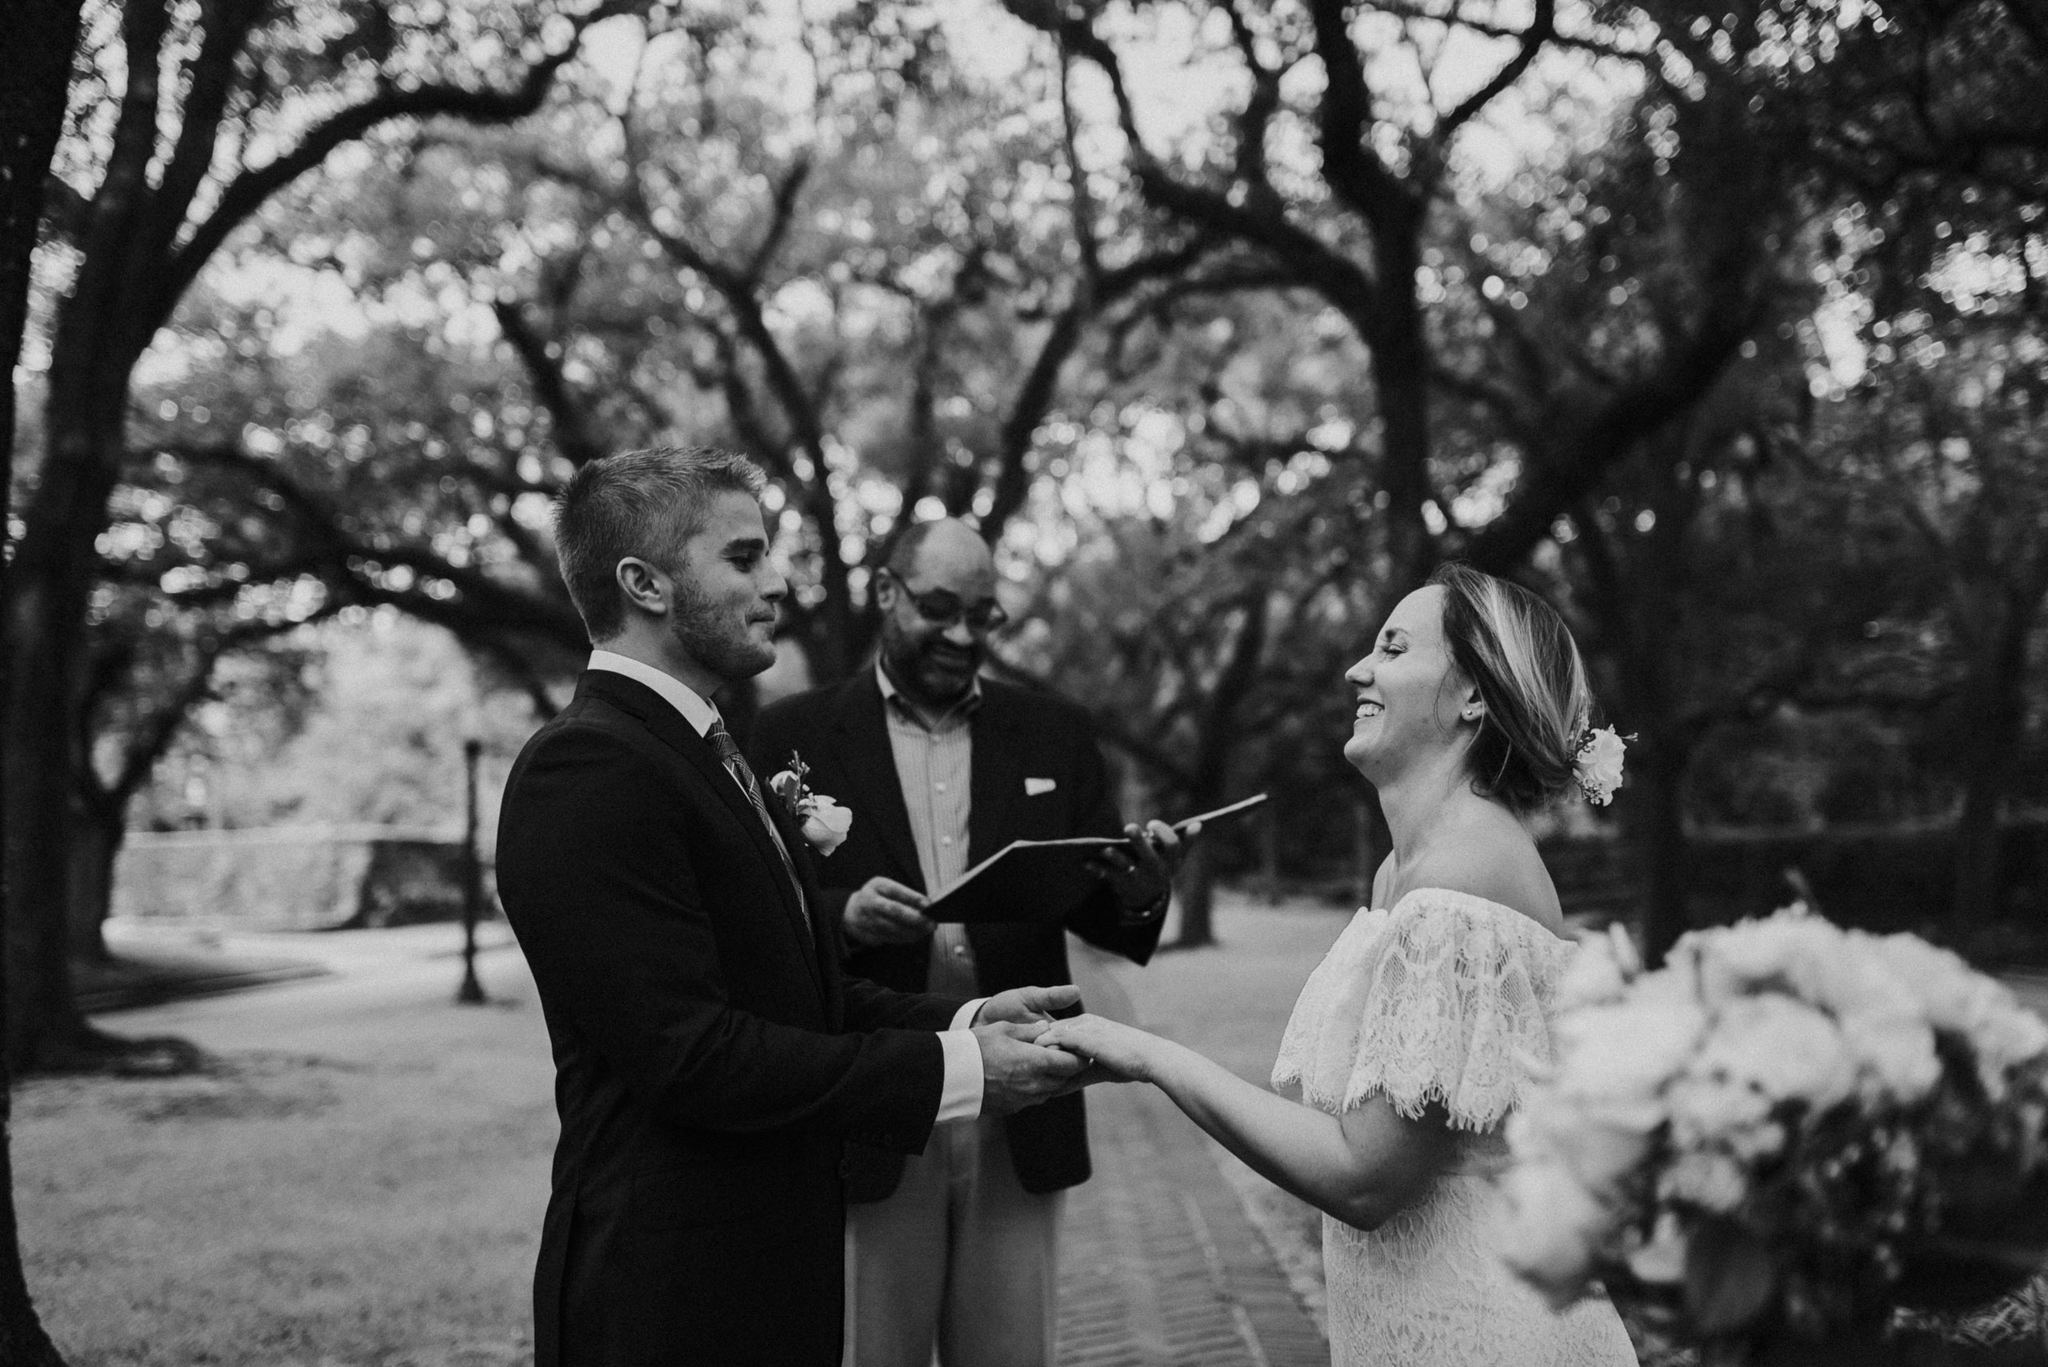 Houston Wedding Photographer-North Blvd Intimate Elopement- Houston Wedding Photographer -Kristen Giles Photography-28.jpg